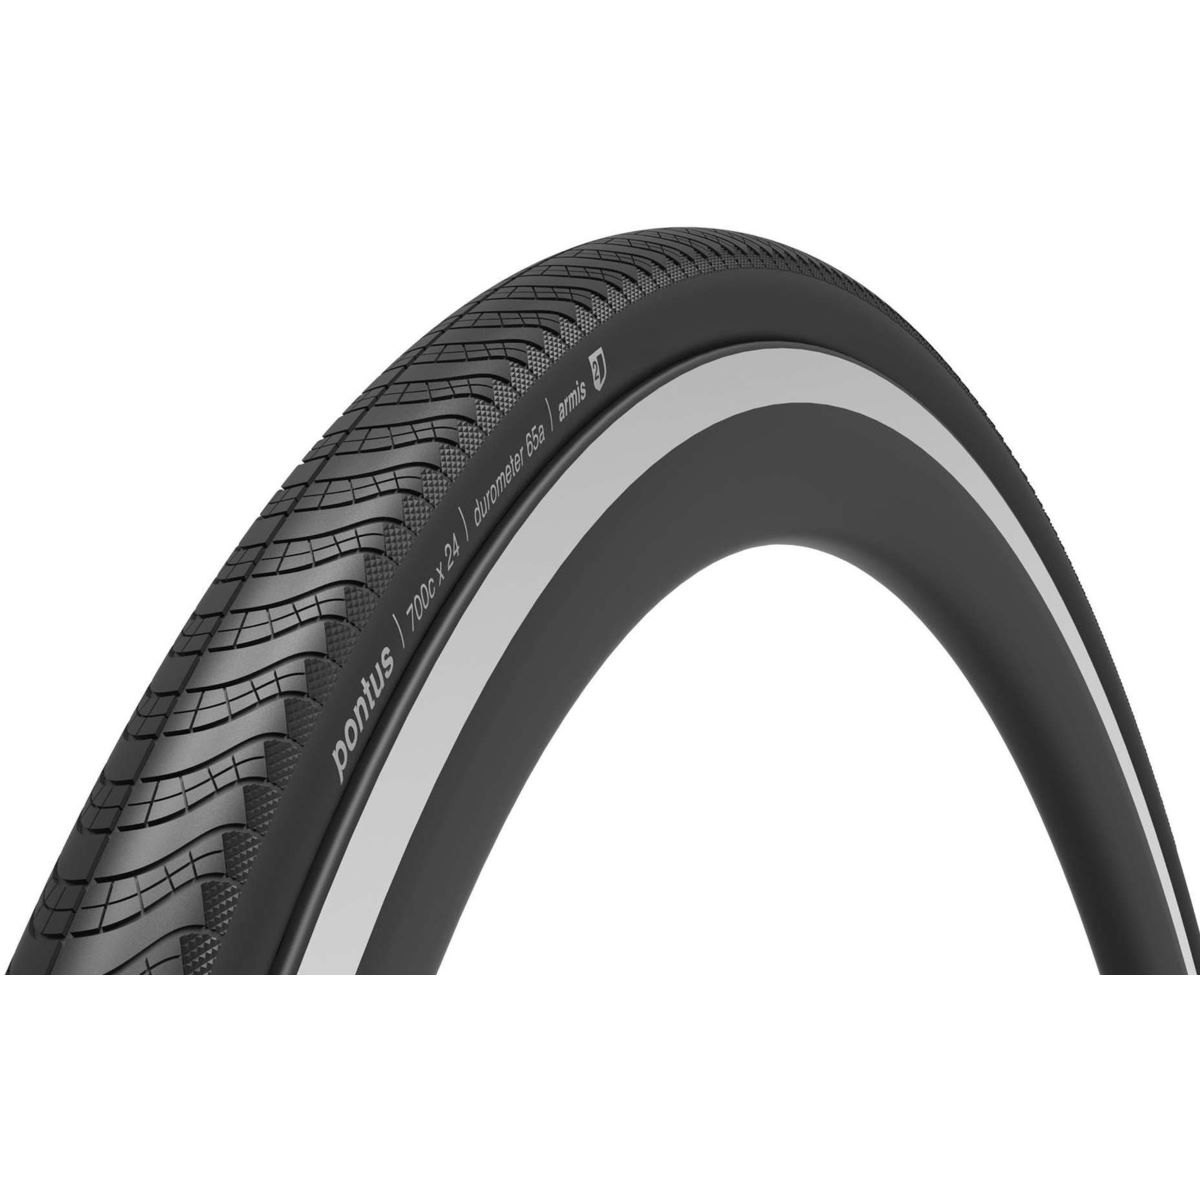 Ere Research Pontus Clincher 120TPI Folding Road Tyre - Cubiertas